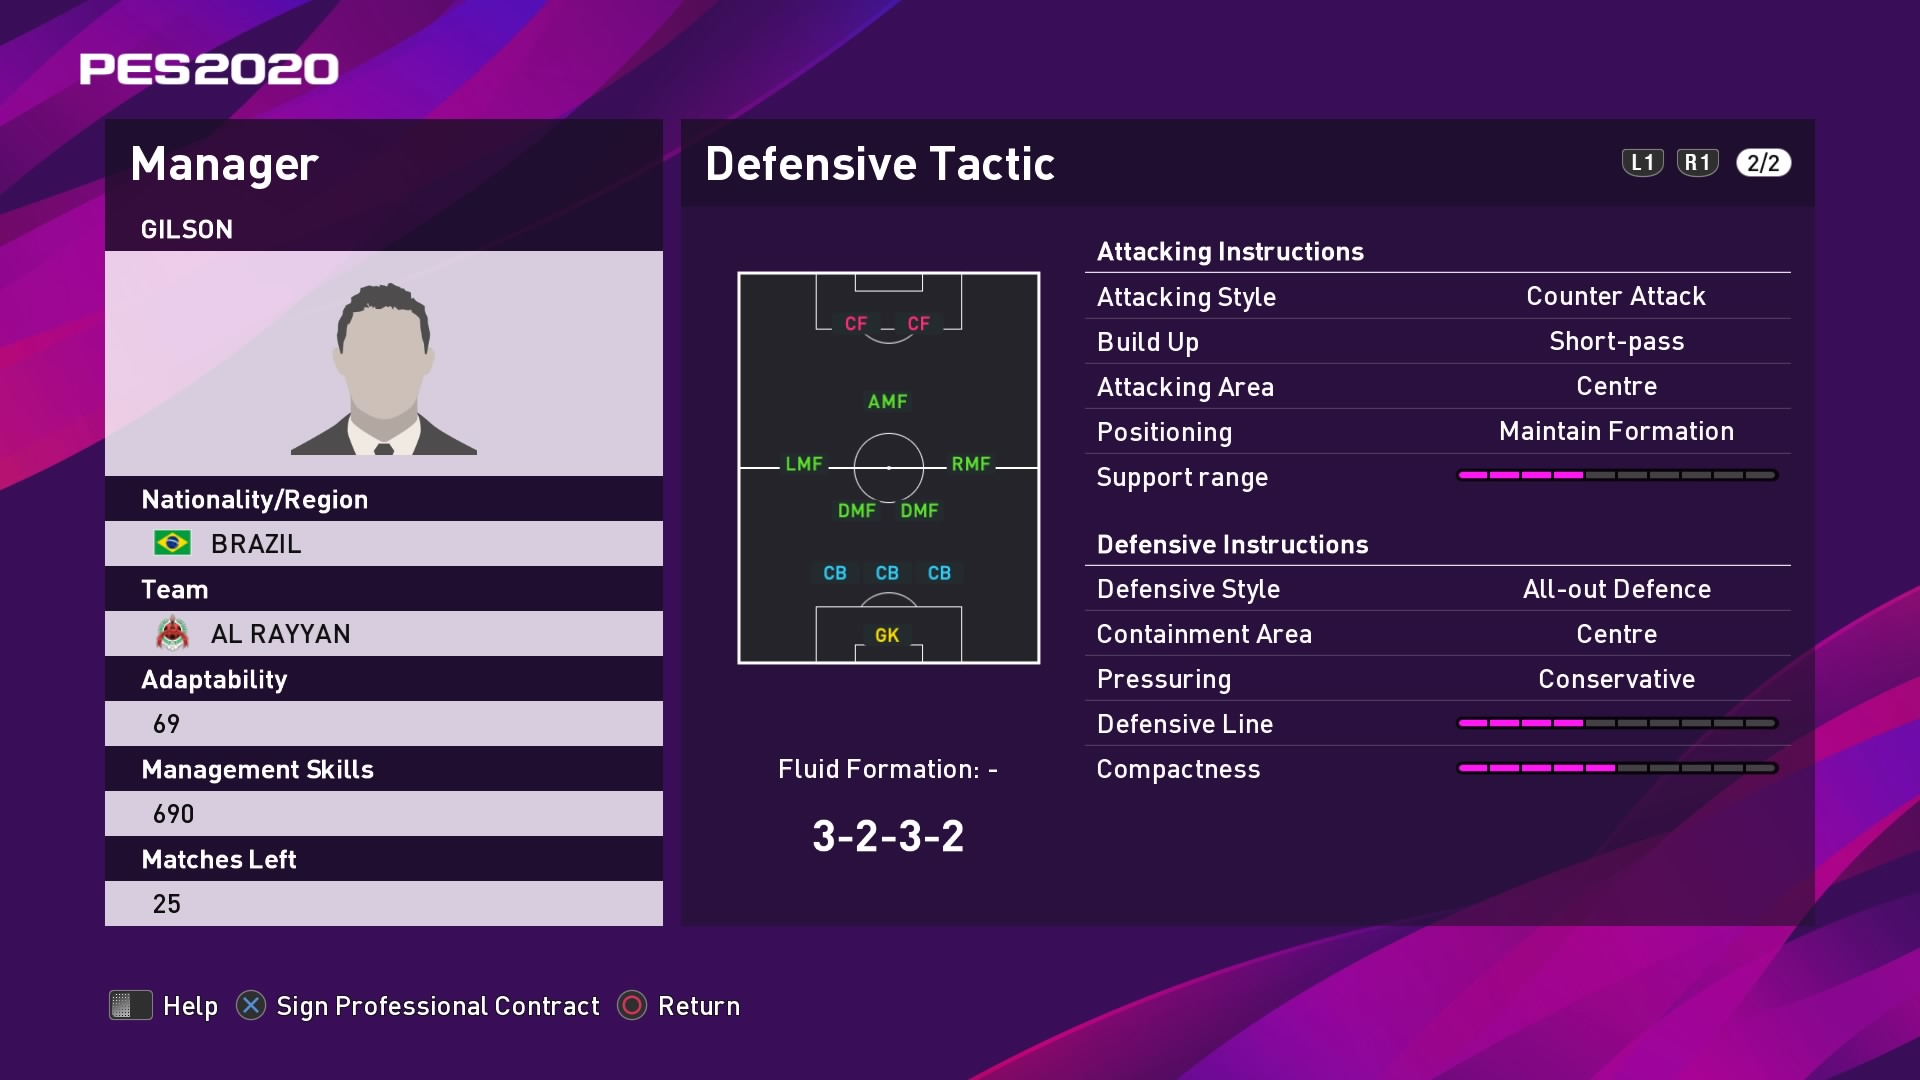 Gilson Defensive Tactic in PES 2020 myClub